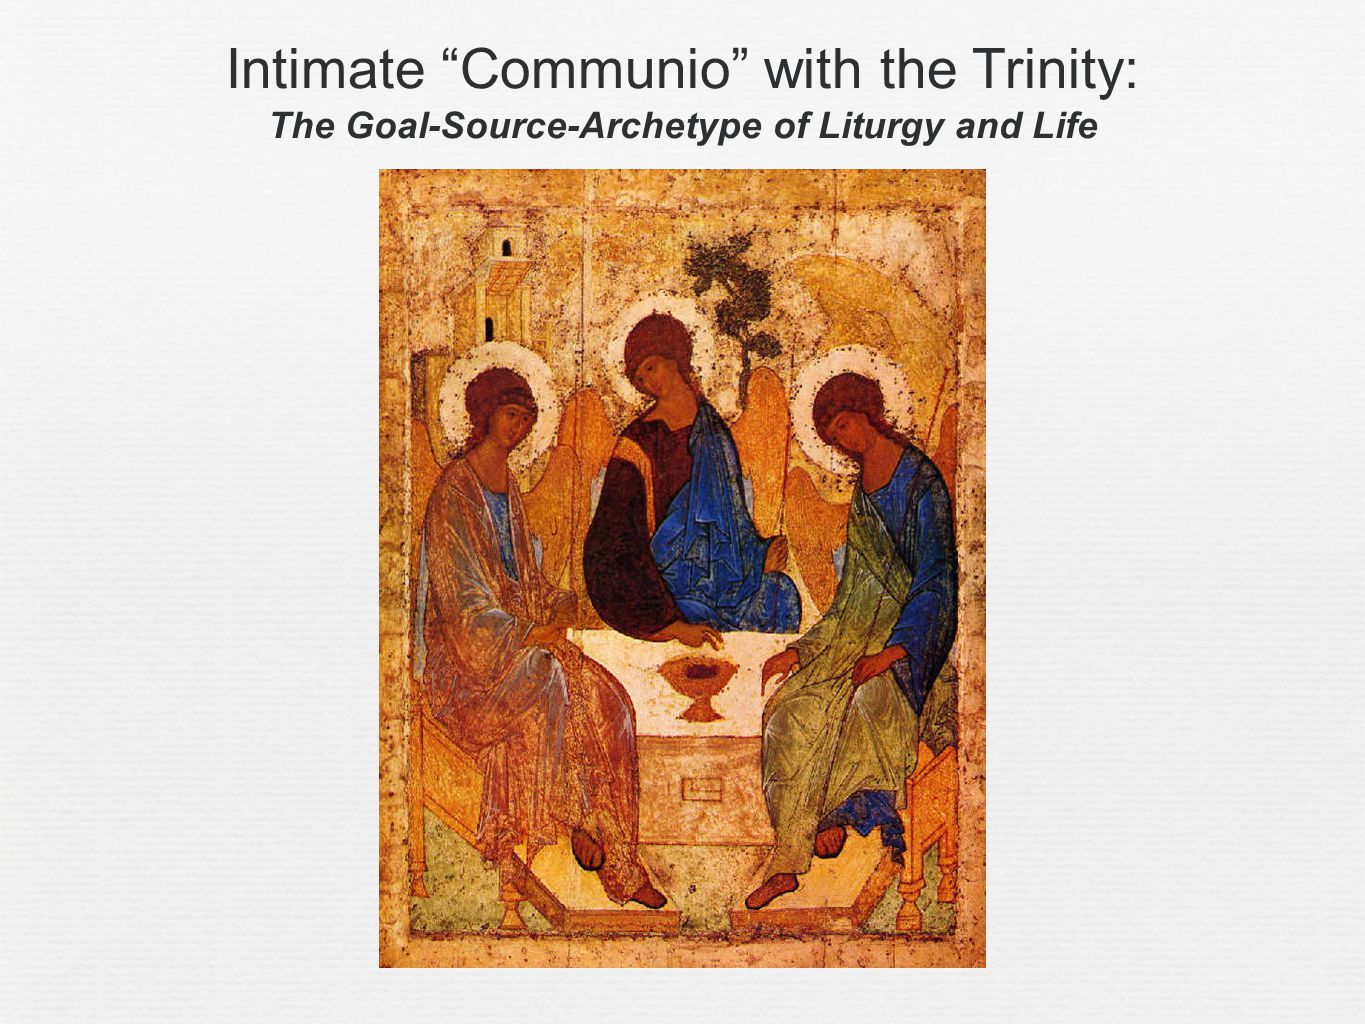 Intimate Communio with the Trinity: The Goal-Source-Archetype of Liturgy and Life